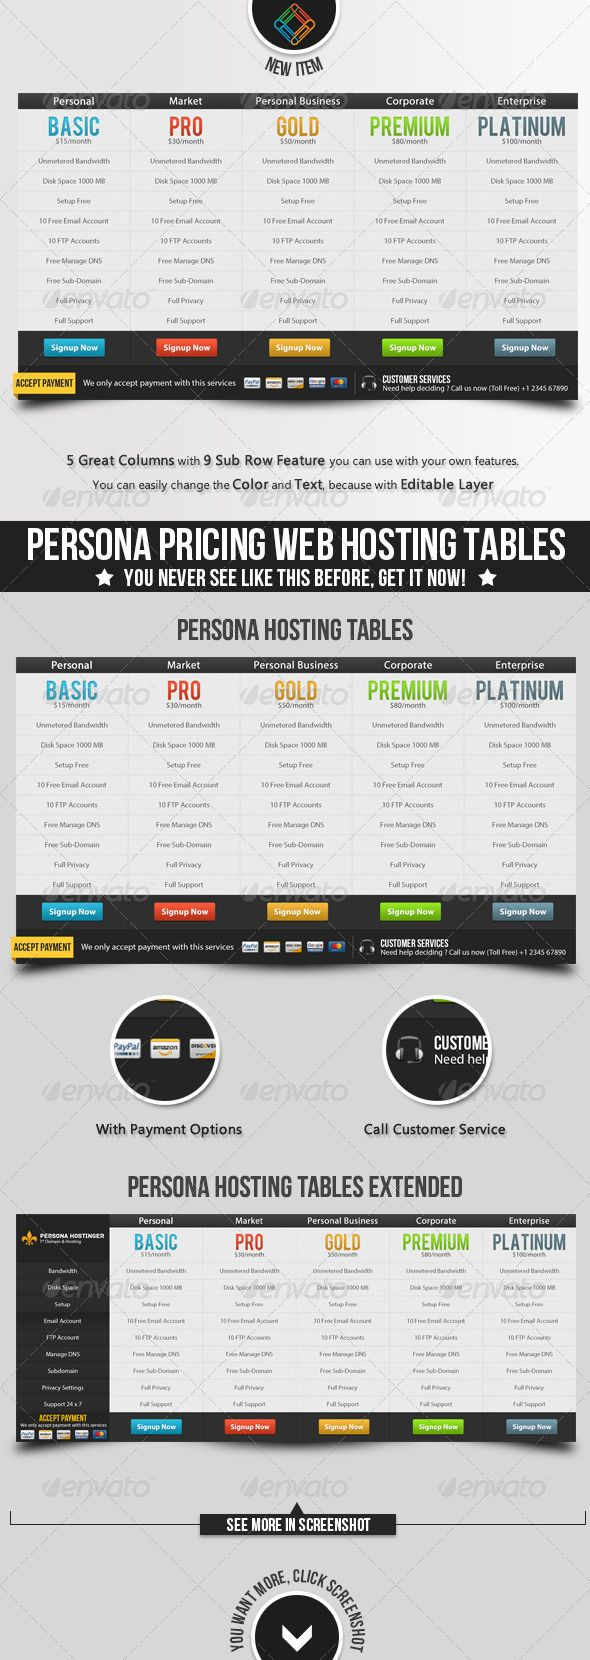 Persona Pricing Web Hosting Tables | Template, Pricing table and Fonts